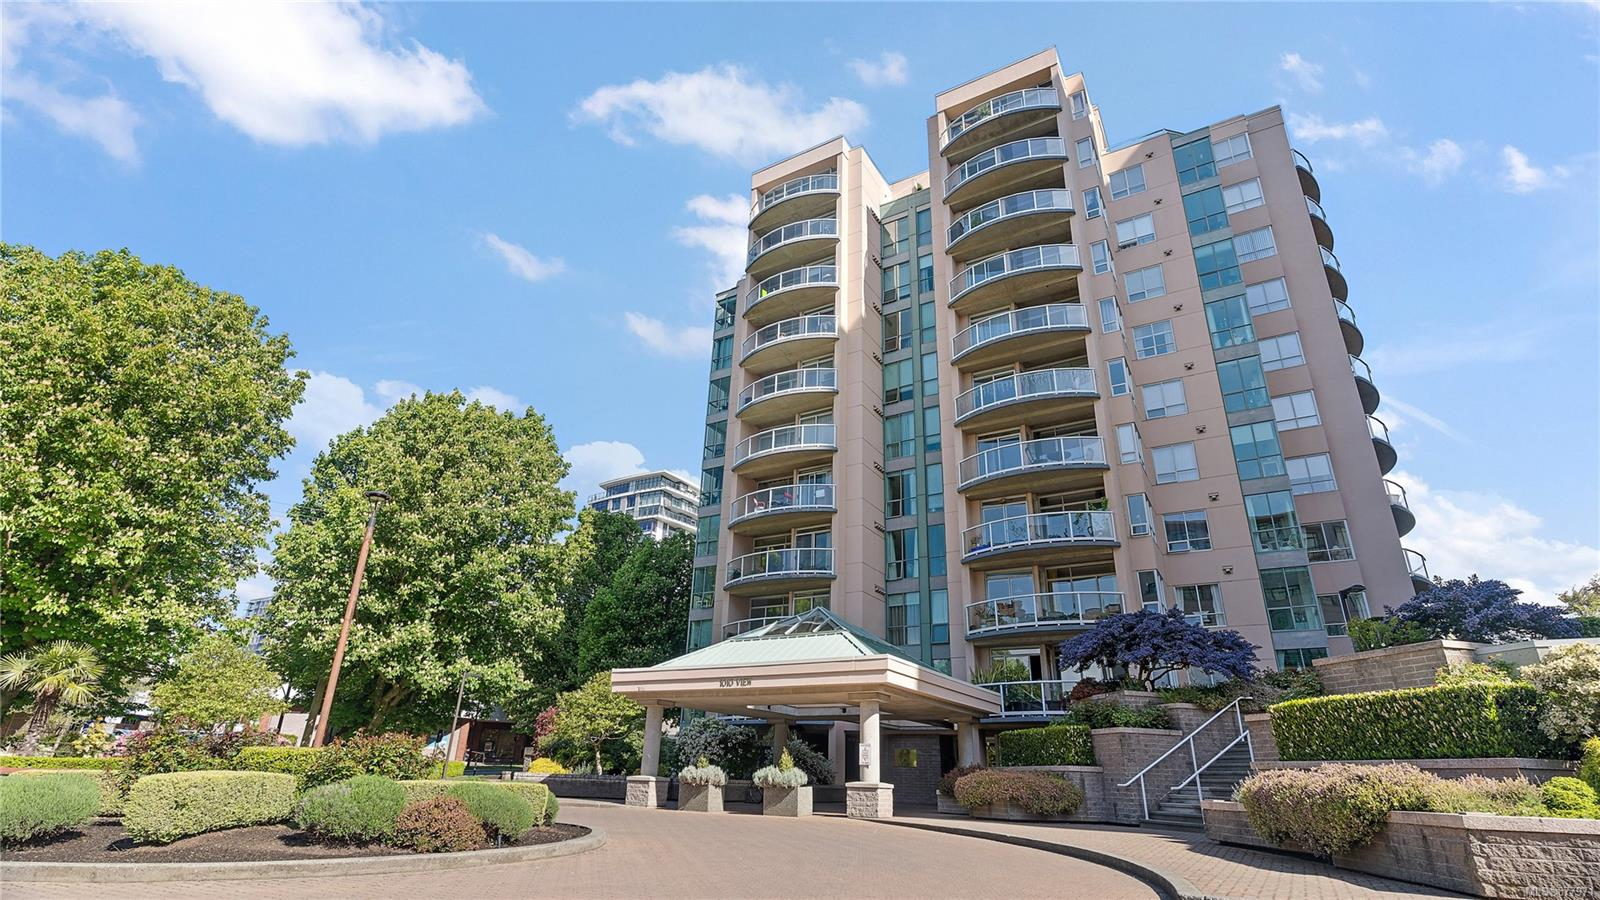 305 - 1010 View Street, Downtown, Victoria